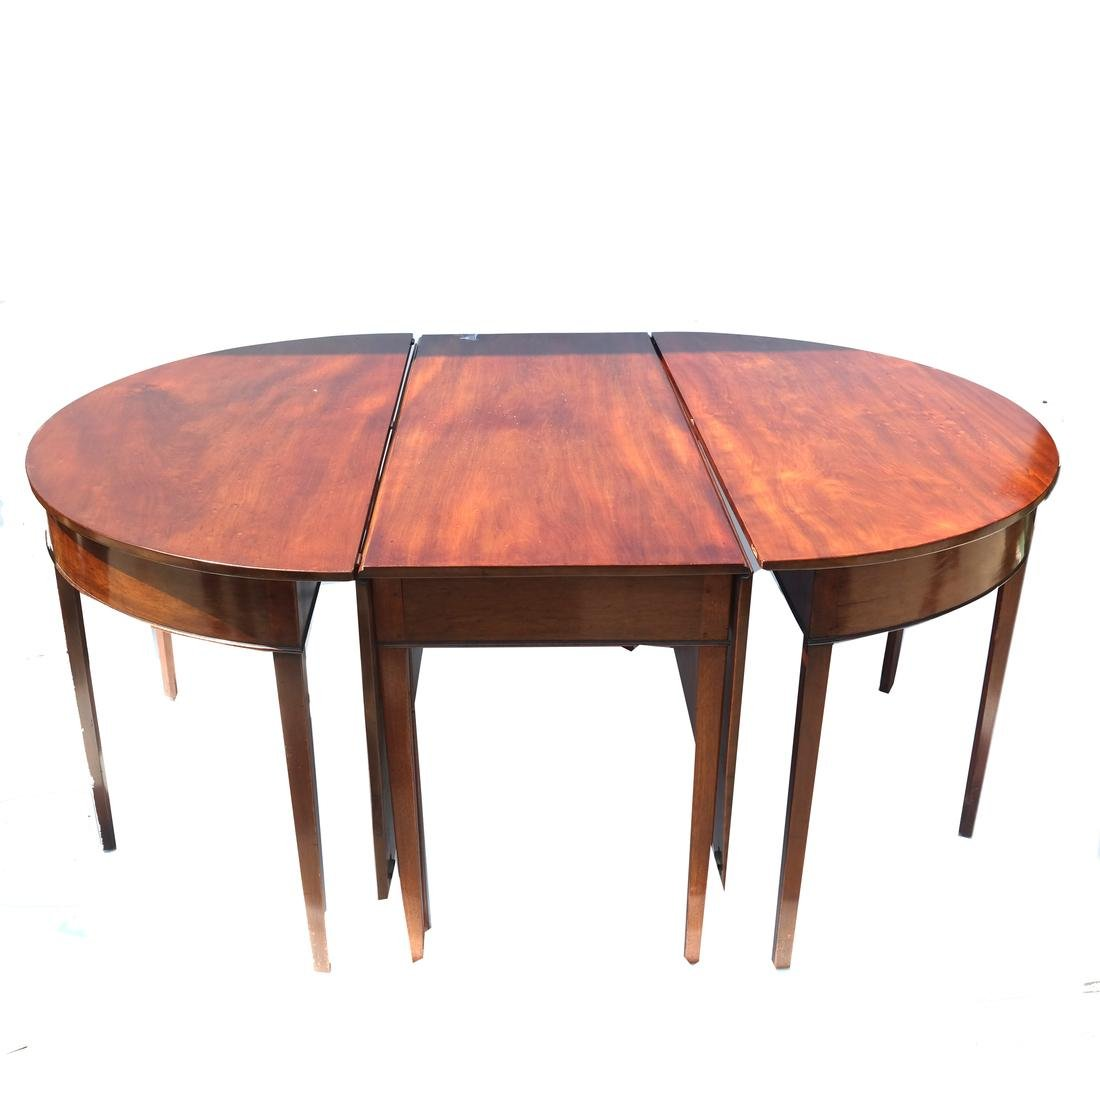 Federal 3-Part Dining Table - 2